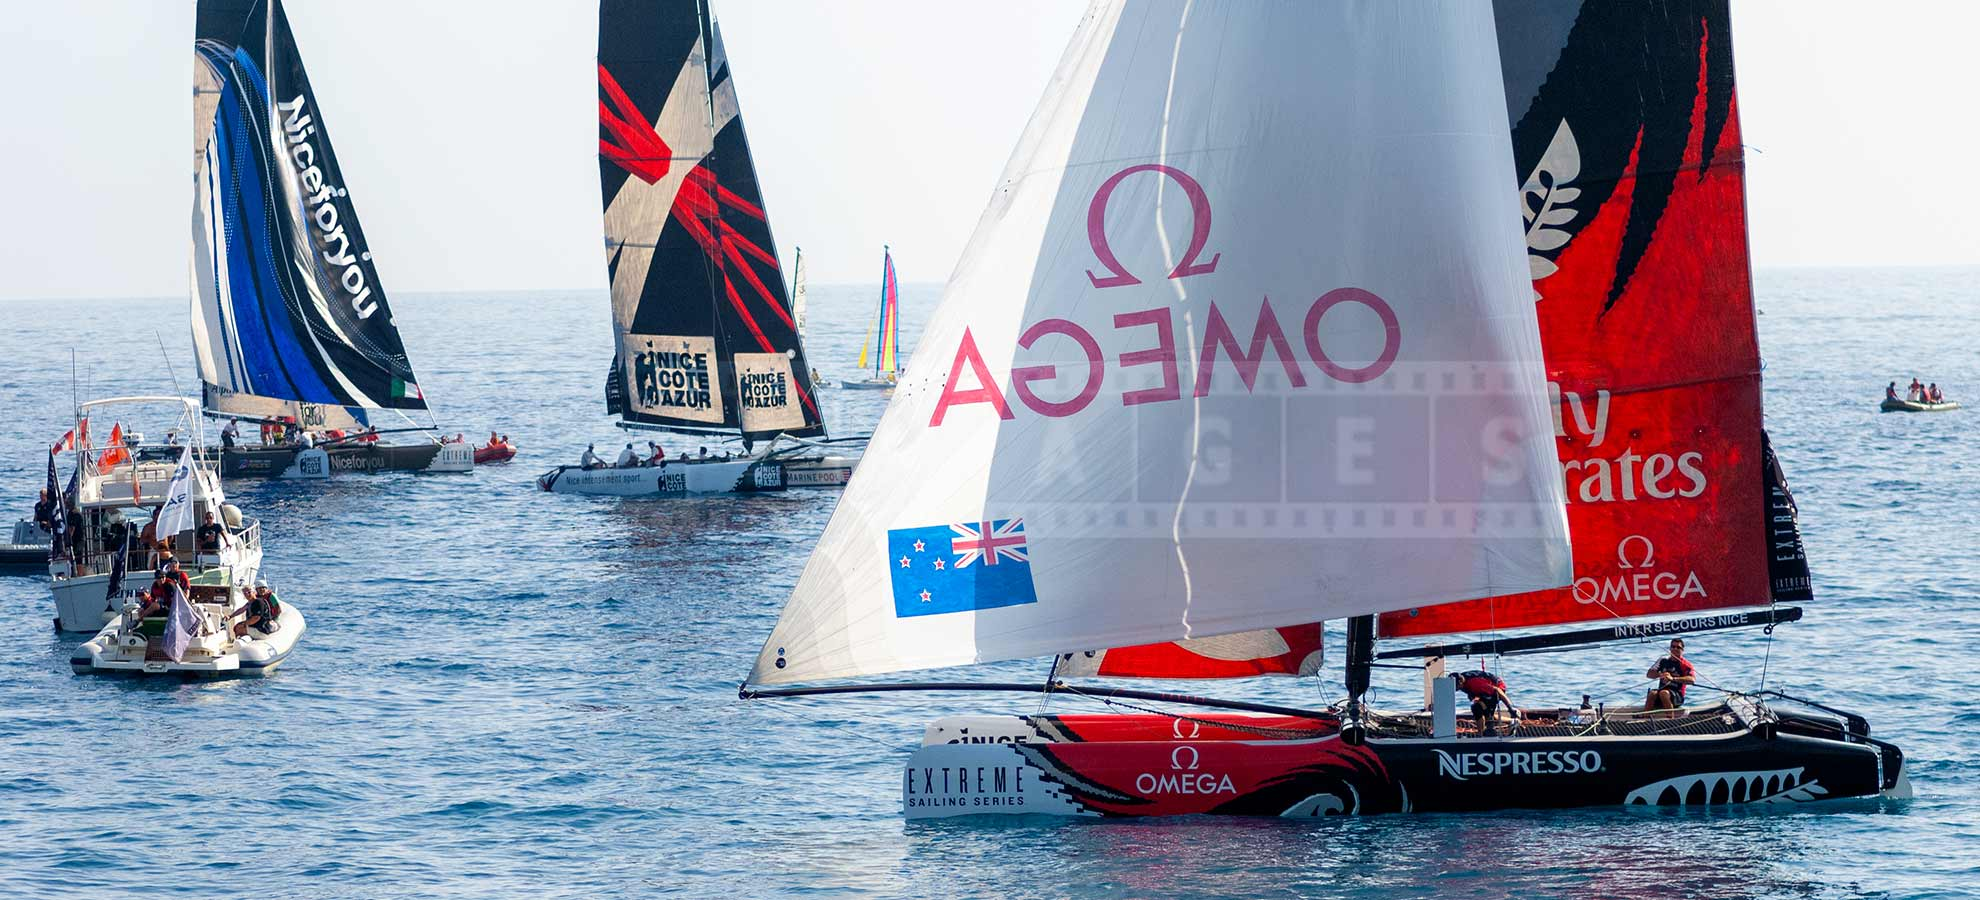 Extreme sailing boats racing in Nice, France